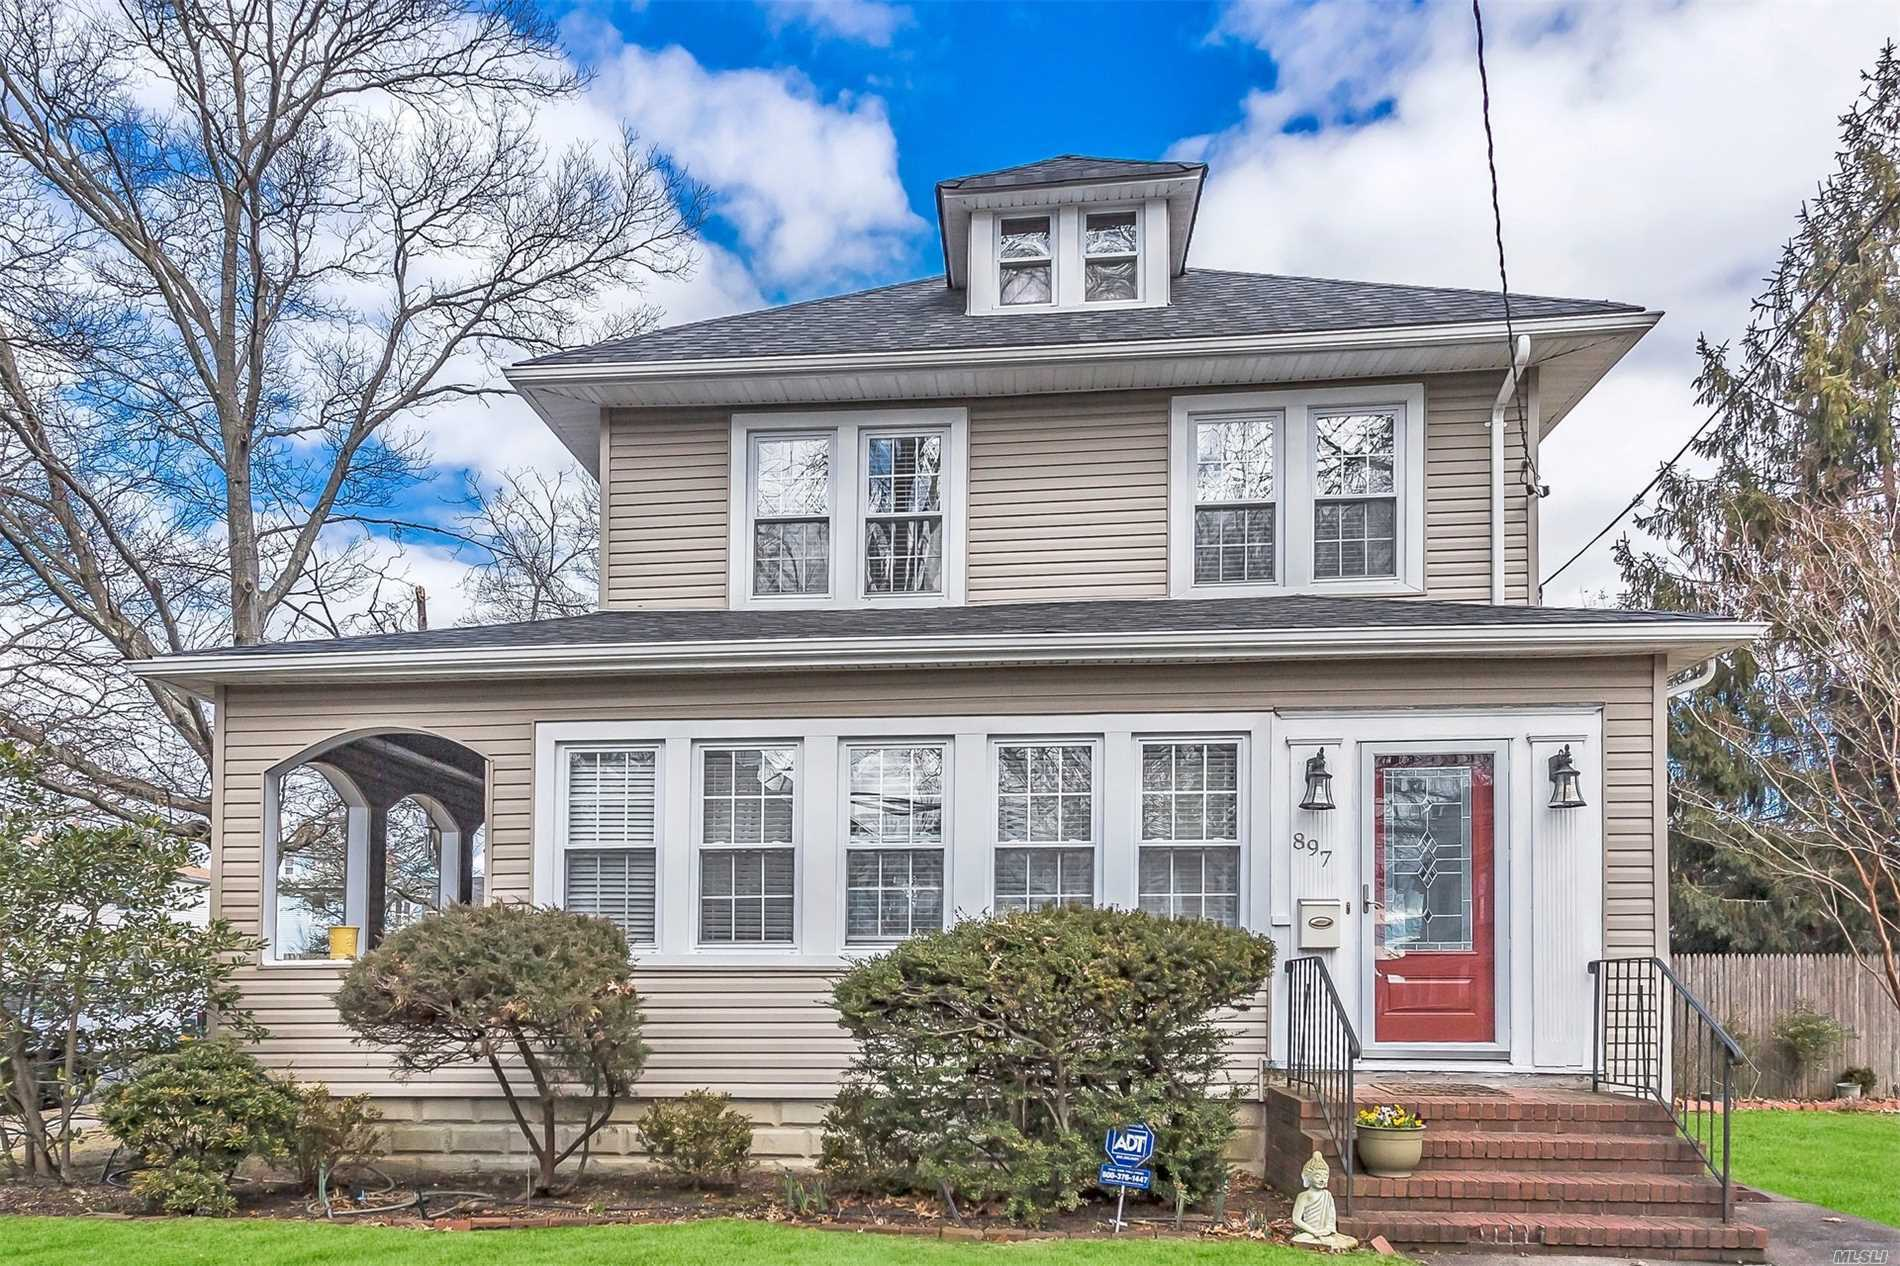 Impressive Colonial in N. Baldwin, Prestine Home on Xtra Large lot, 4 bedrooms, 2 bathrms, 2 Extra rooms and office,  A Beautiful updated EiK with Ss appliance, 2 car Garage, Open Porch To relax!! A Must See !! Conveniently located to LiRR, Sunrise &Southern State Parkways and Shopping!!!!